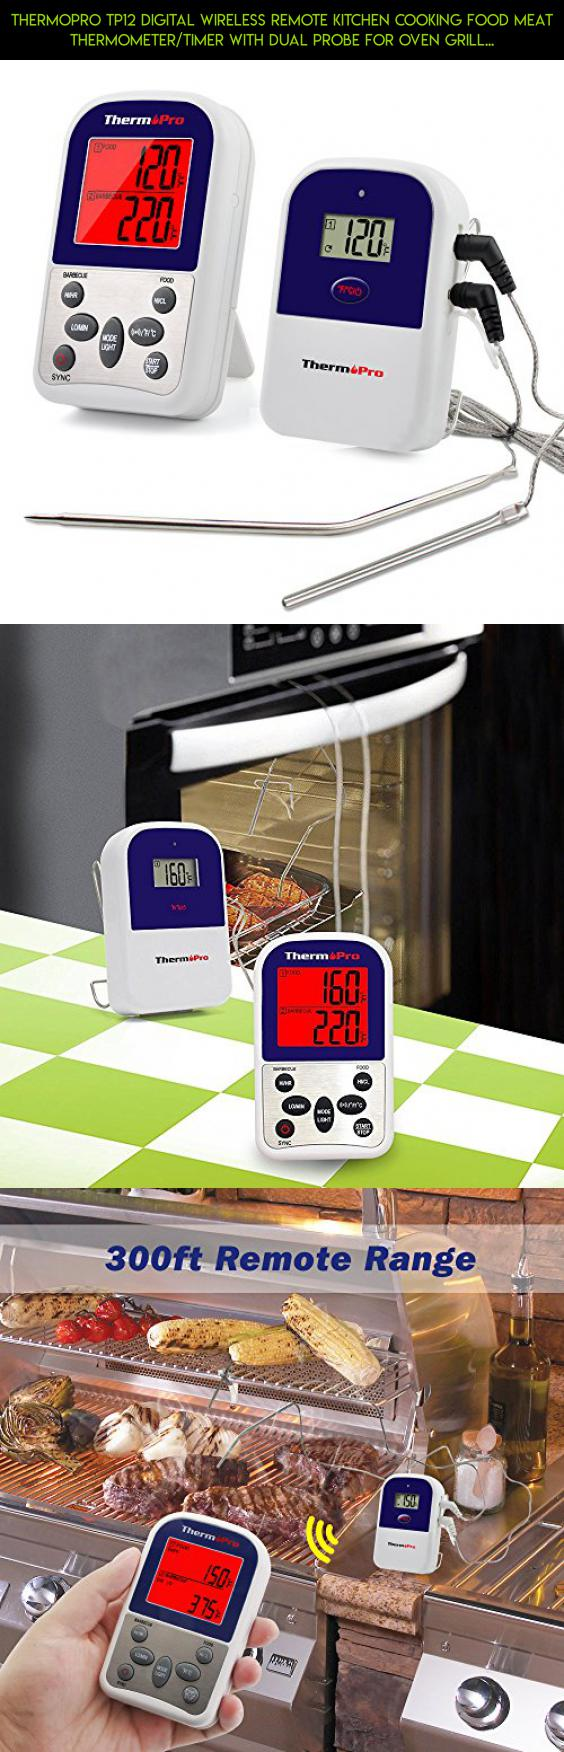 thermopro tp12 digital wireless remote kitchen cooking food meat